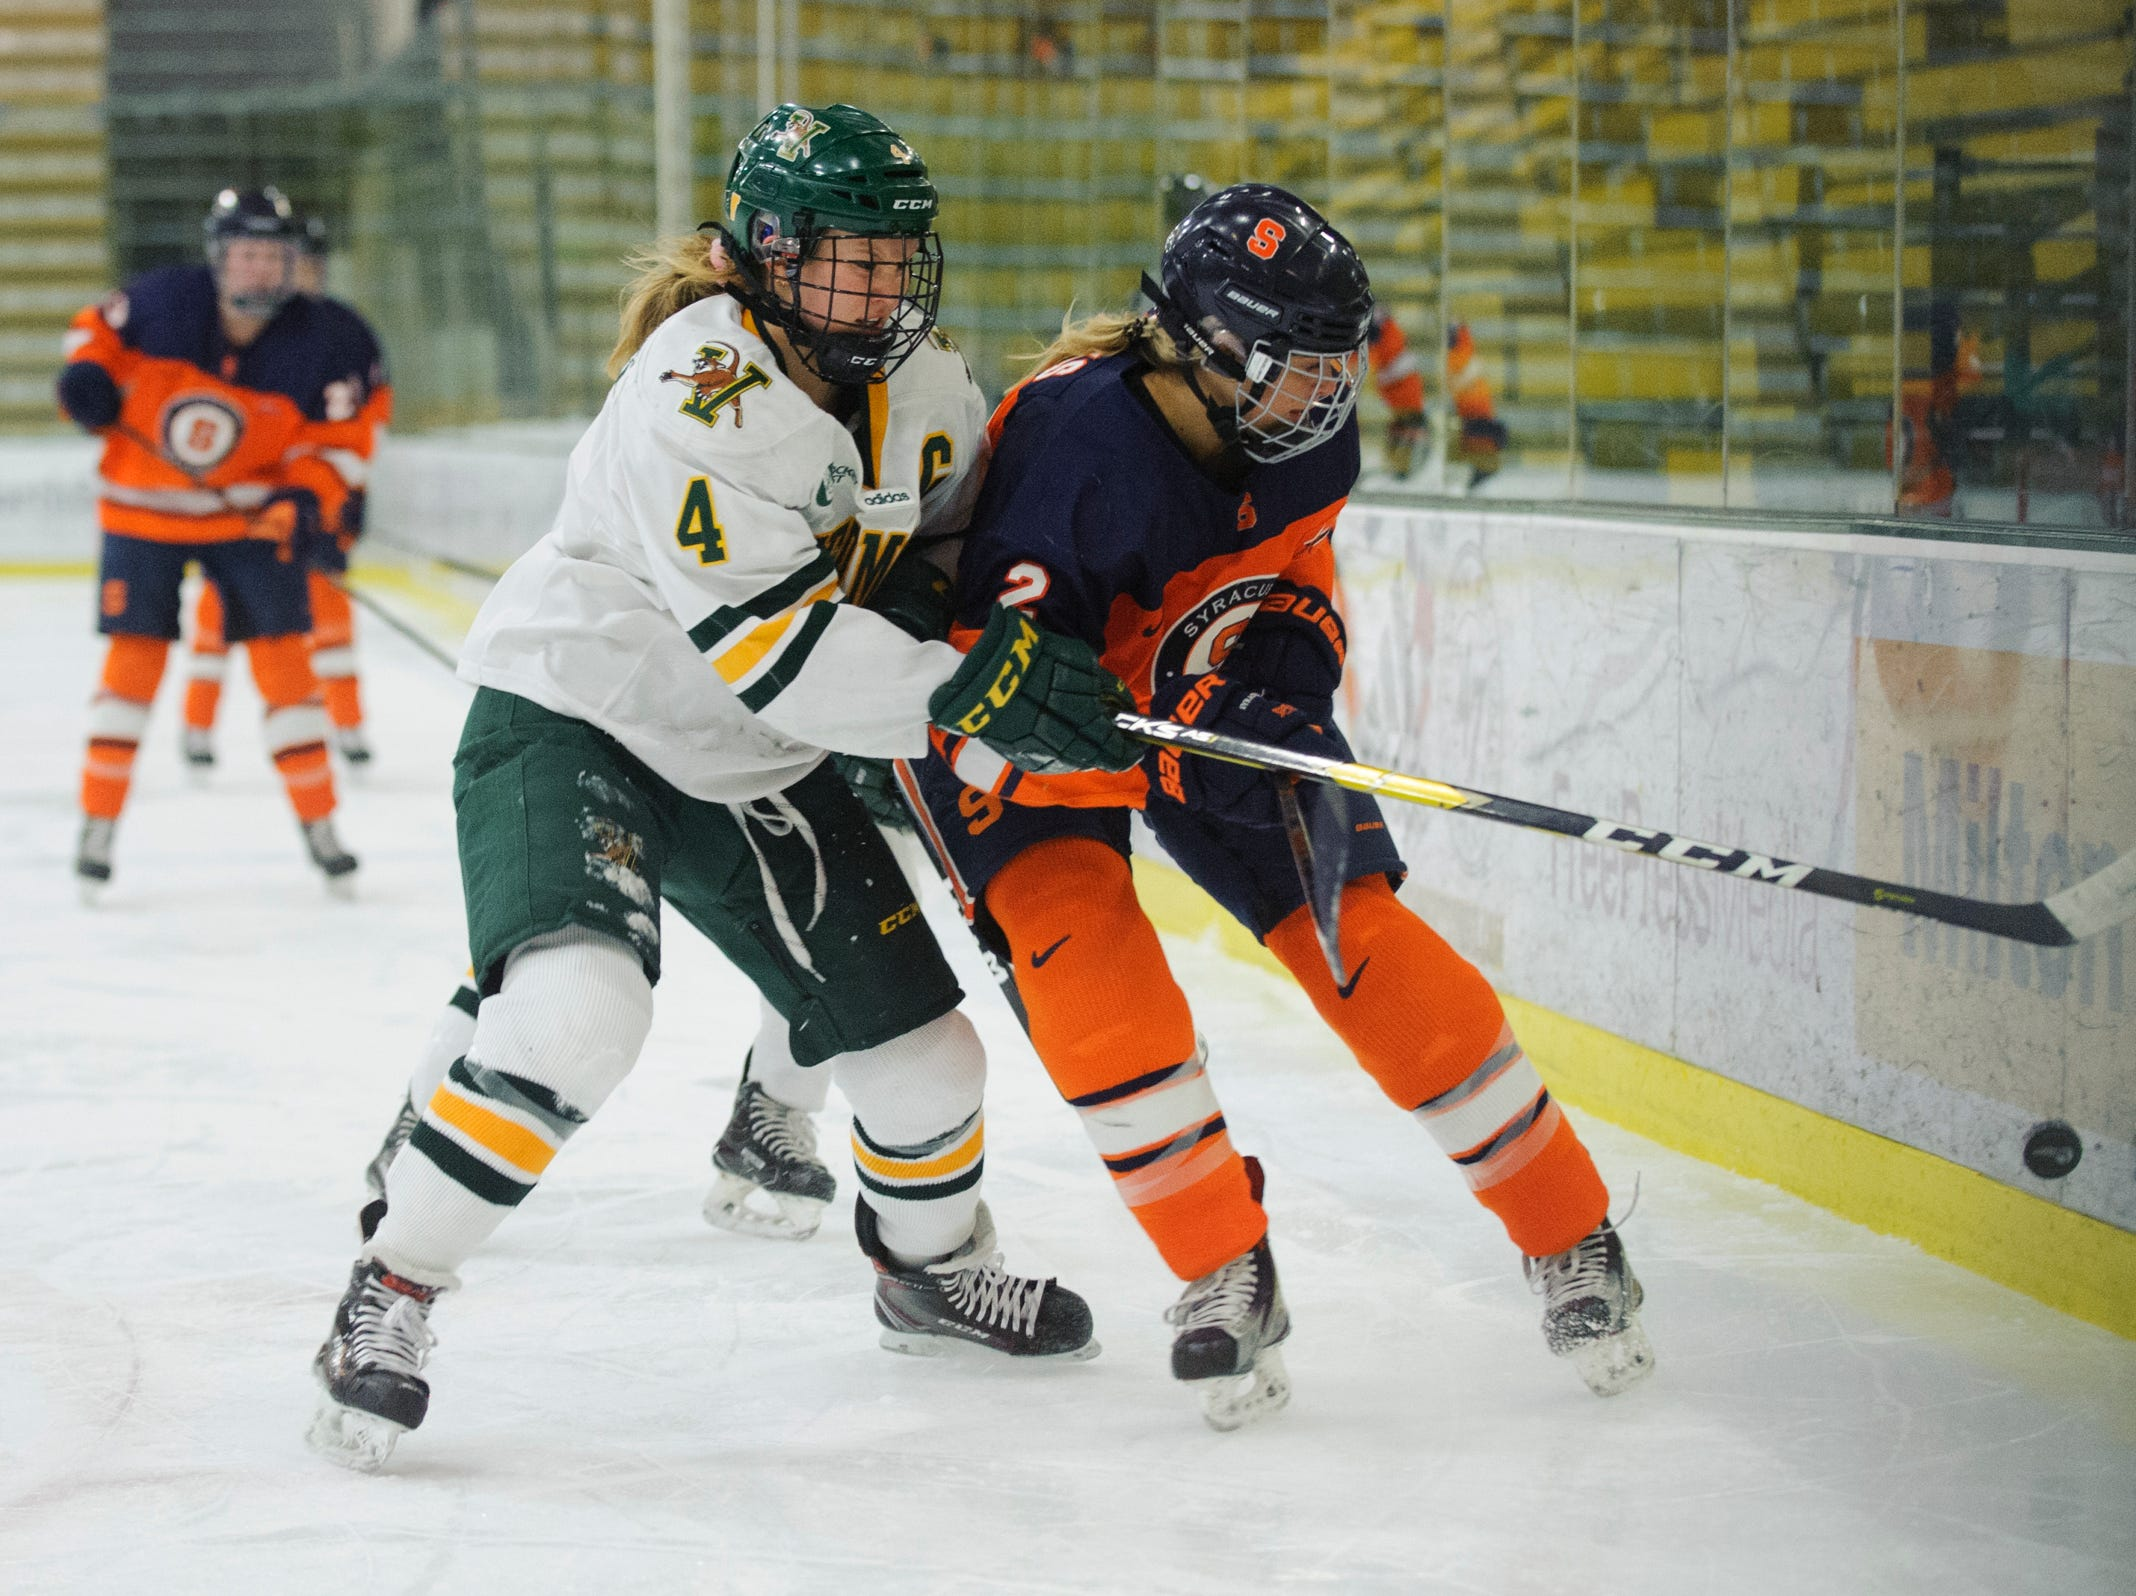 Vermont's Sammy Kolwart (4) battles for the puck with Syracuse's Logan Hicks (2) during the women's hockey game between the Syracuse Orange and the Vermont Catamounts at Gutterson Field House on Friday night November 23, 2018 in Burlington.